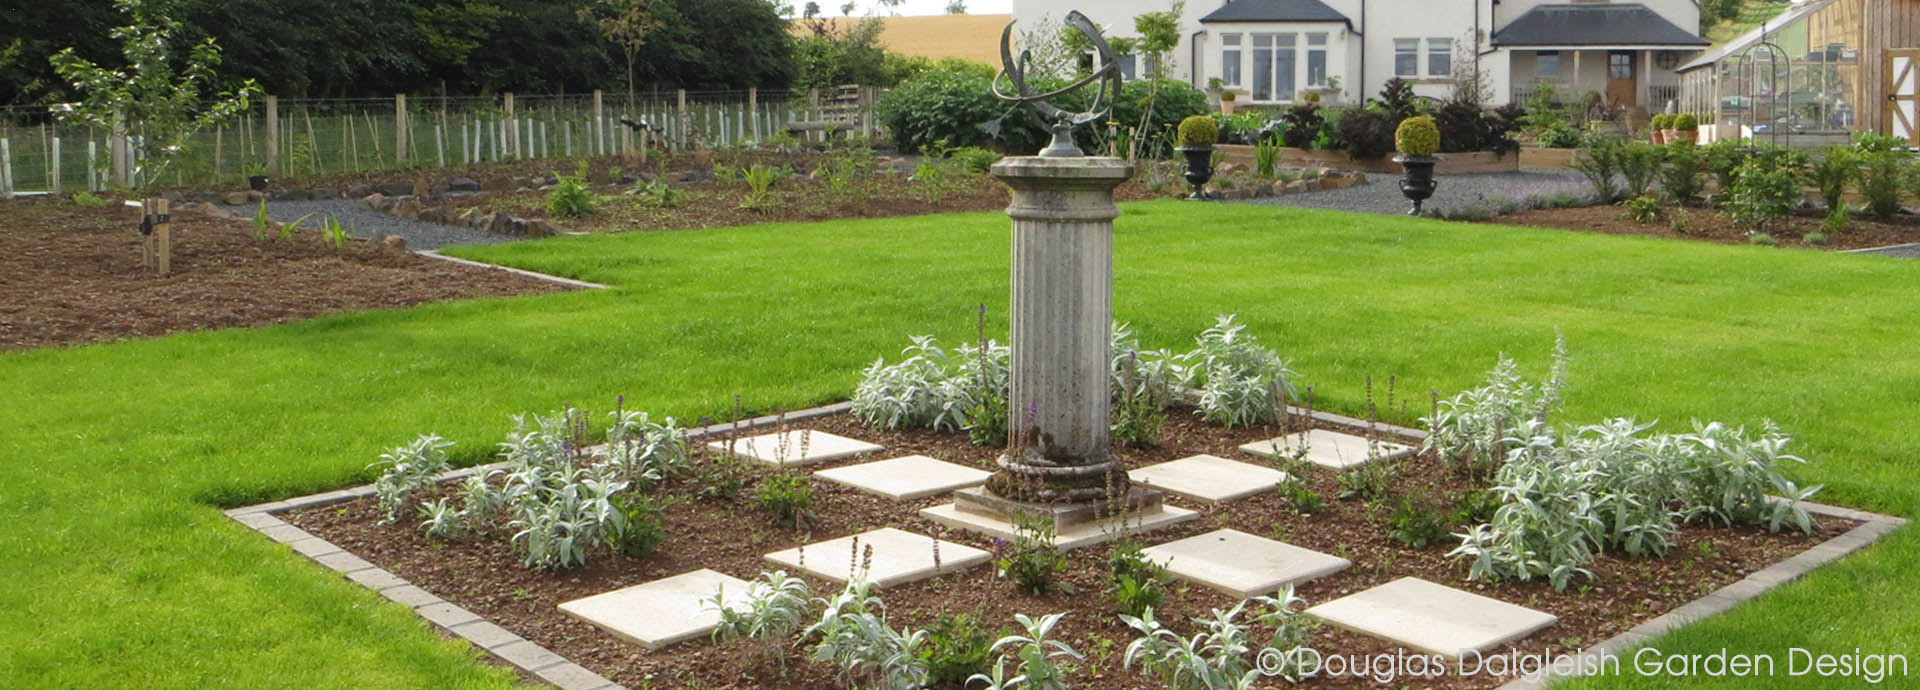 garden sundial in new lawn area